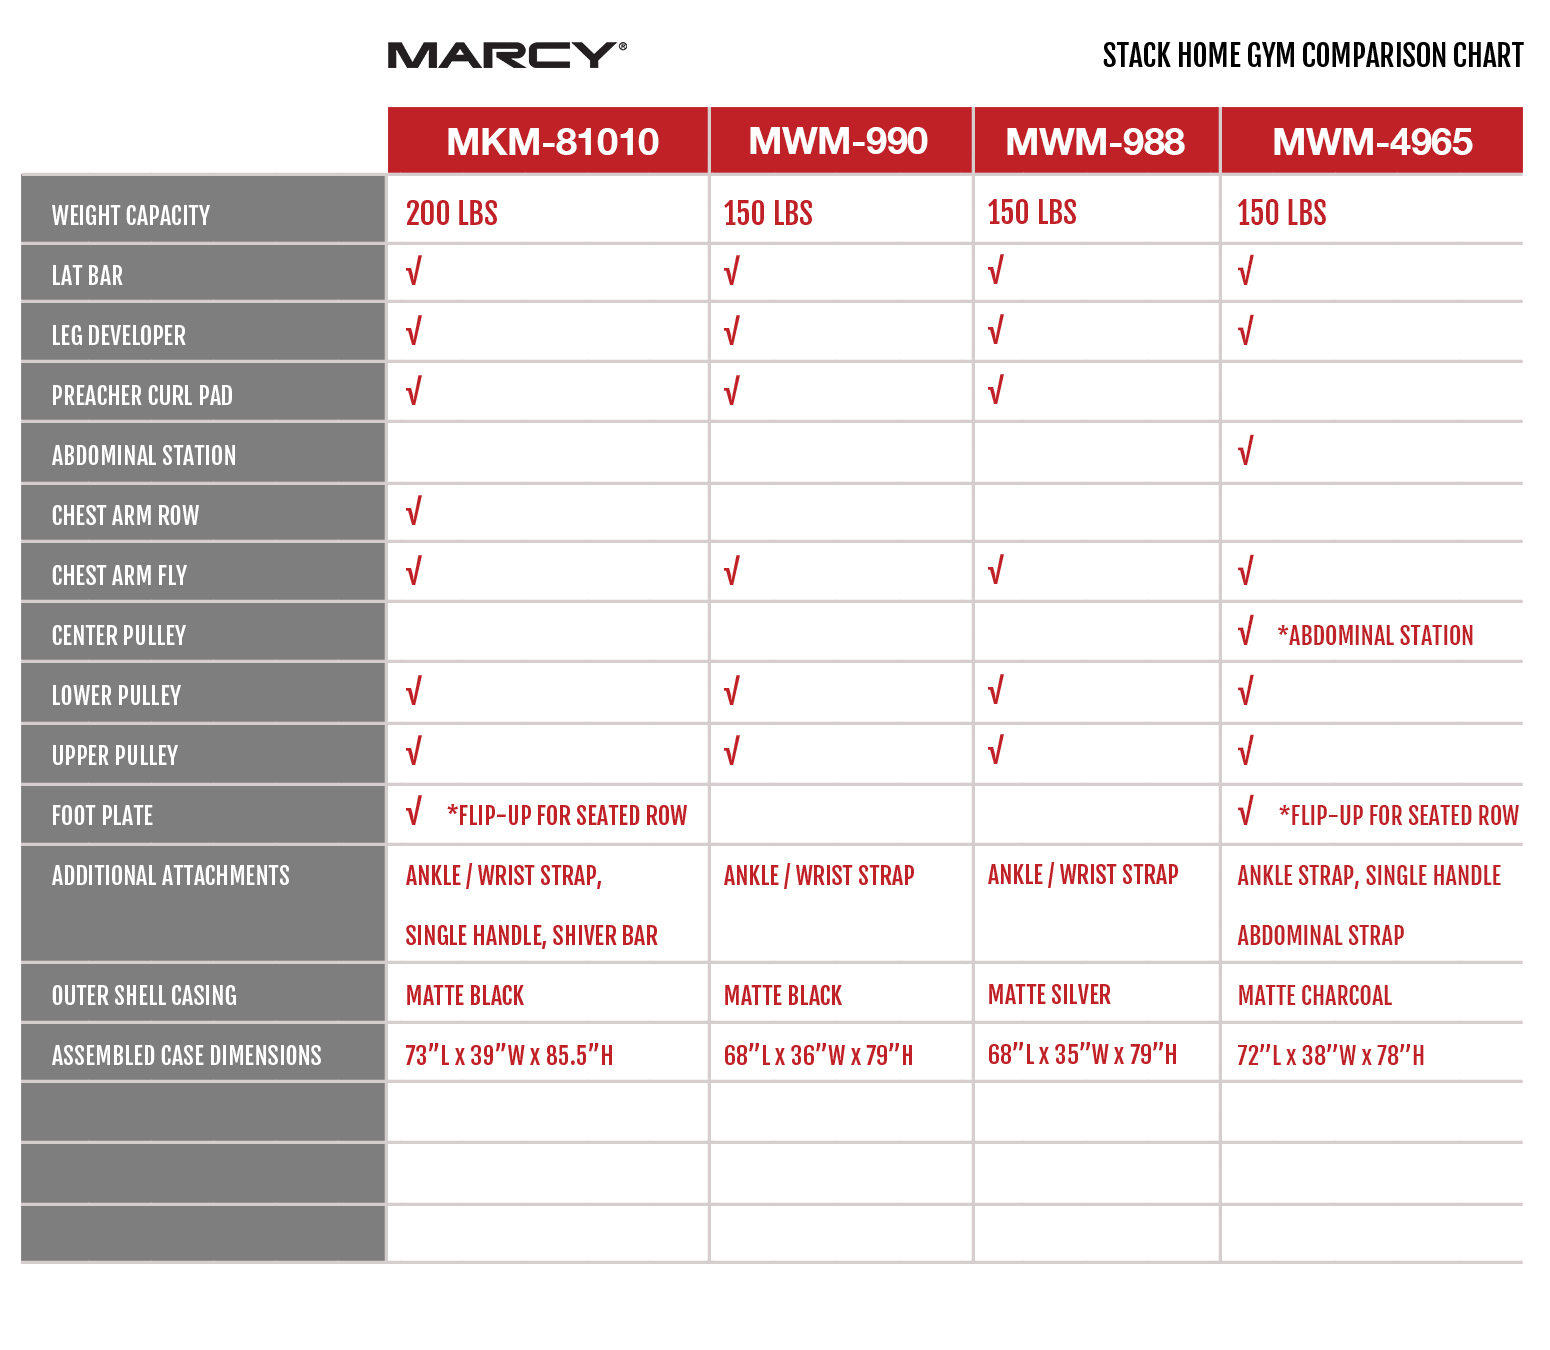 Marcy Stack Home Gym Comparison Chart